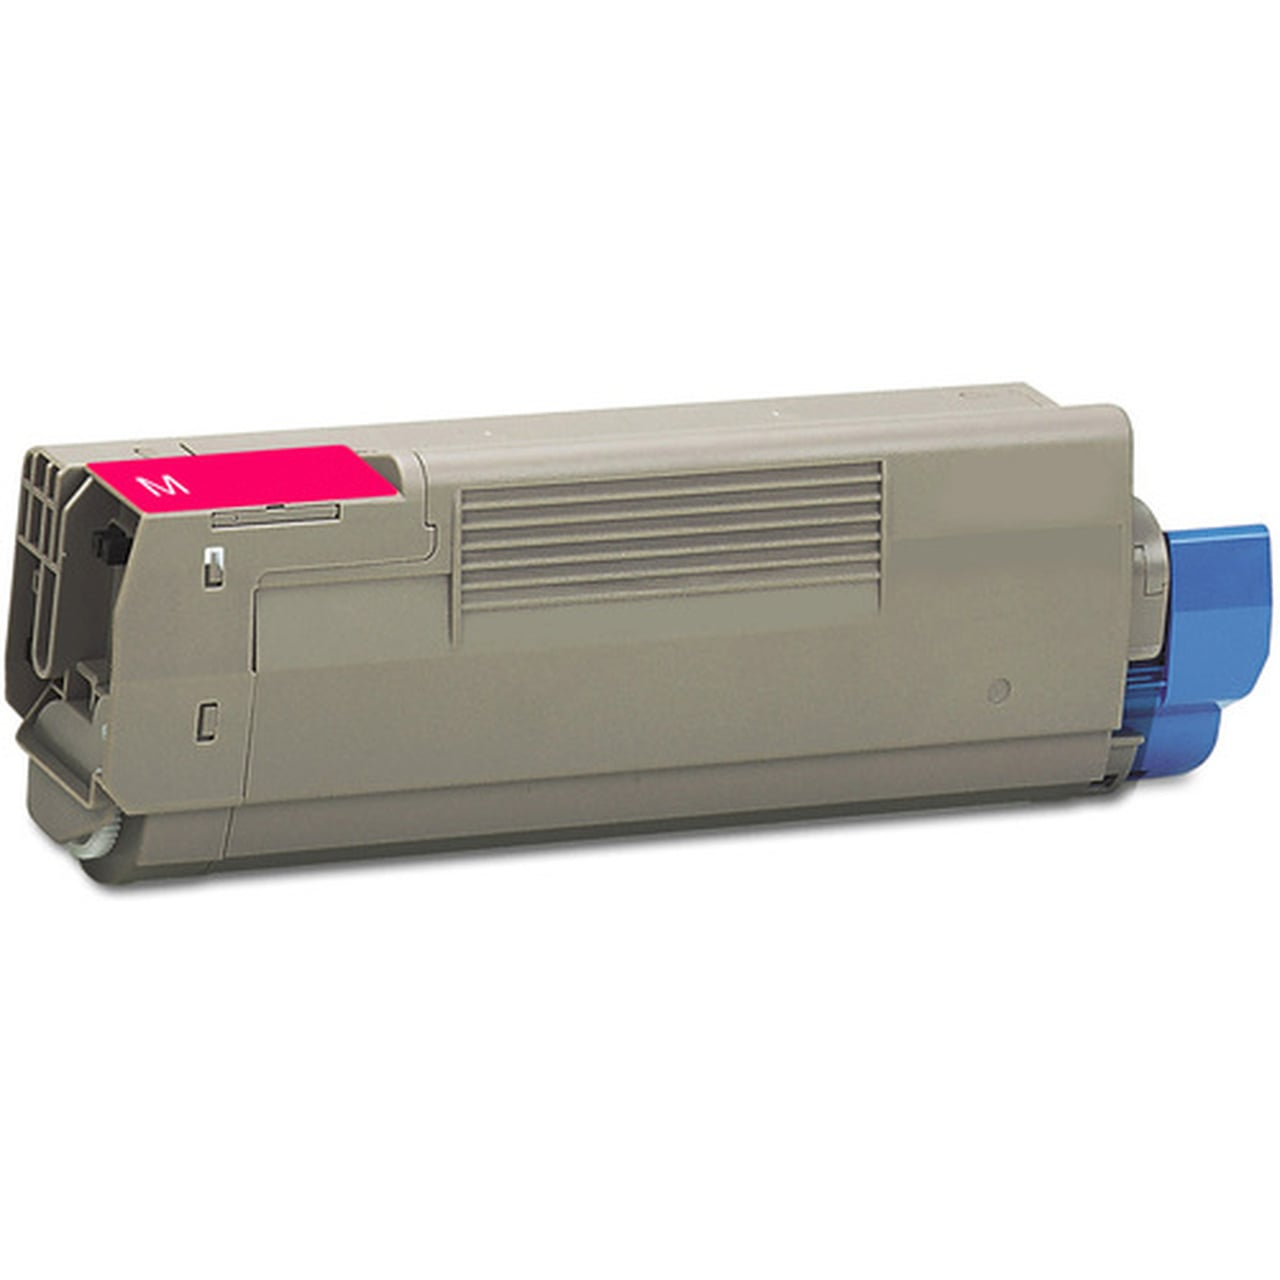 44318602 Toner Cartridge - Okidata Compatible (Magenta)